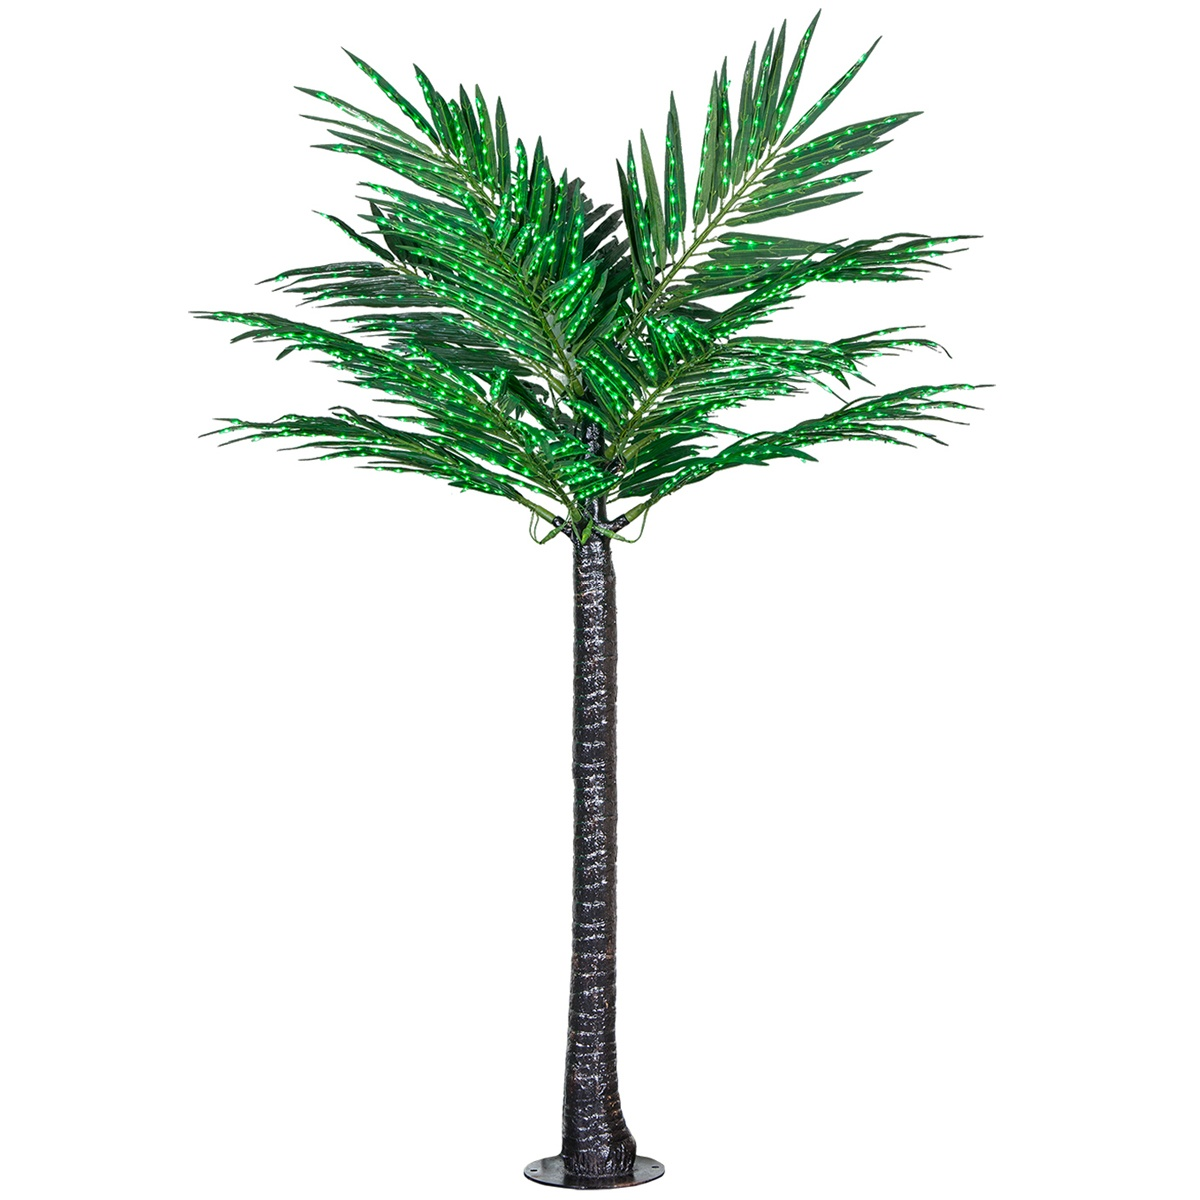 Lighted Palm Trees  8 LED Deluxe Commercial Lighted Palm